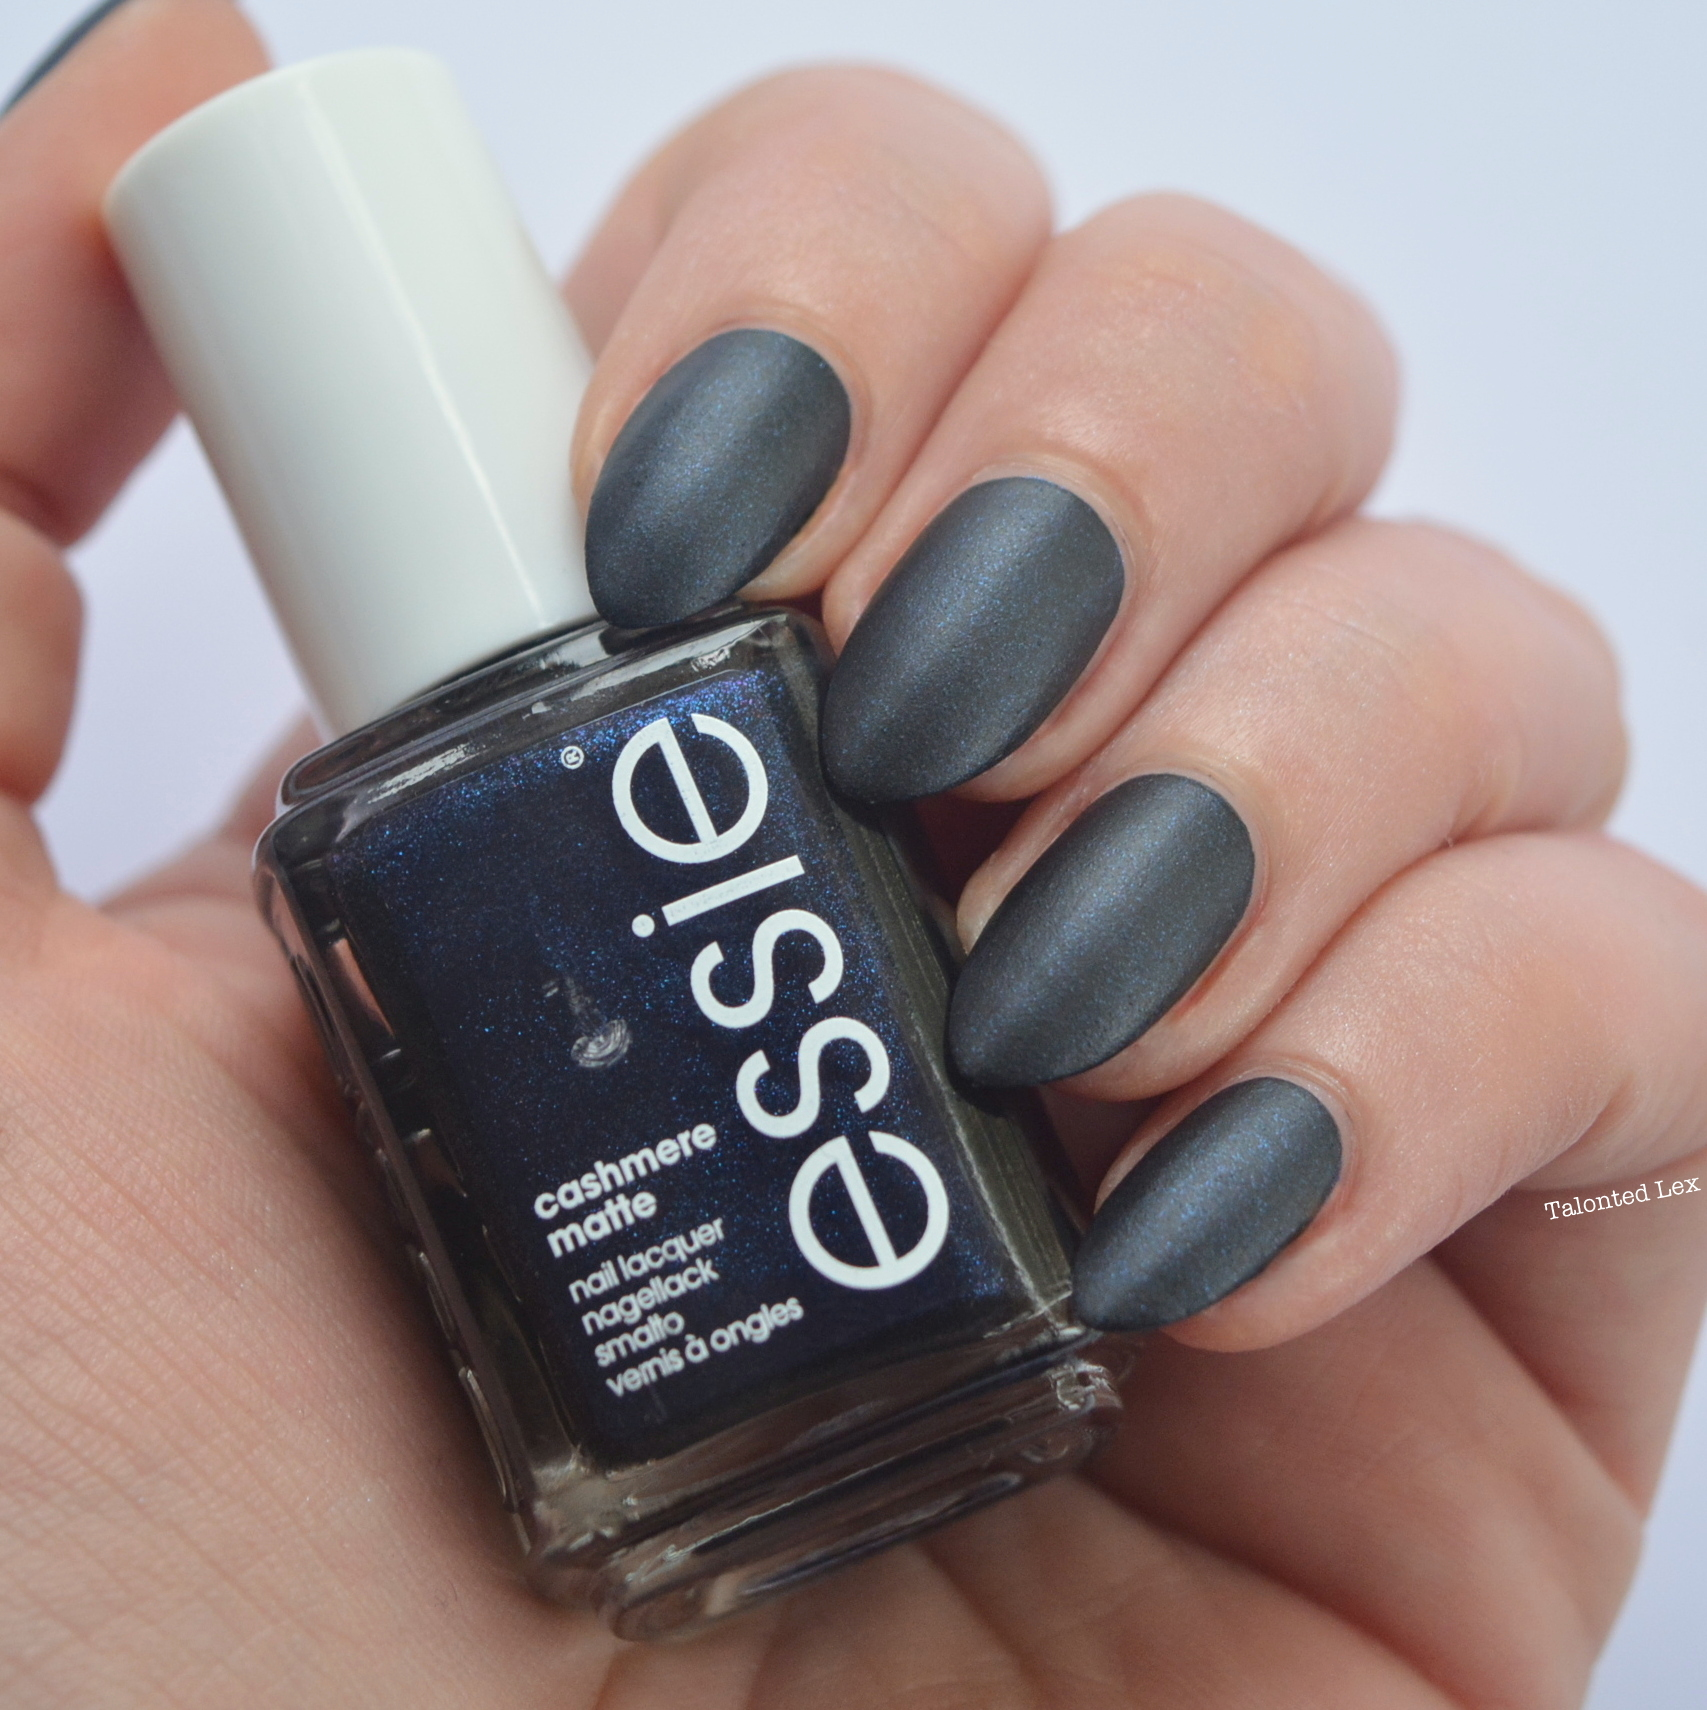 essie-Cashmere-Collection-matte-review-swatches-spun-in-luxe-talonted-lex-3